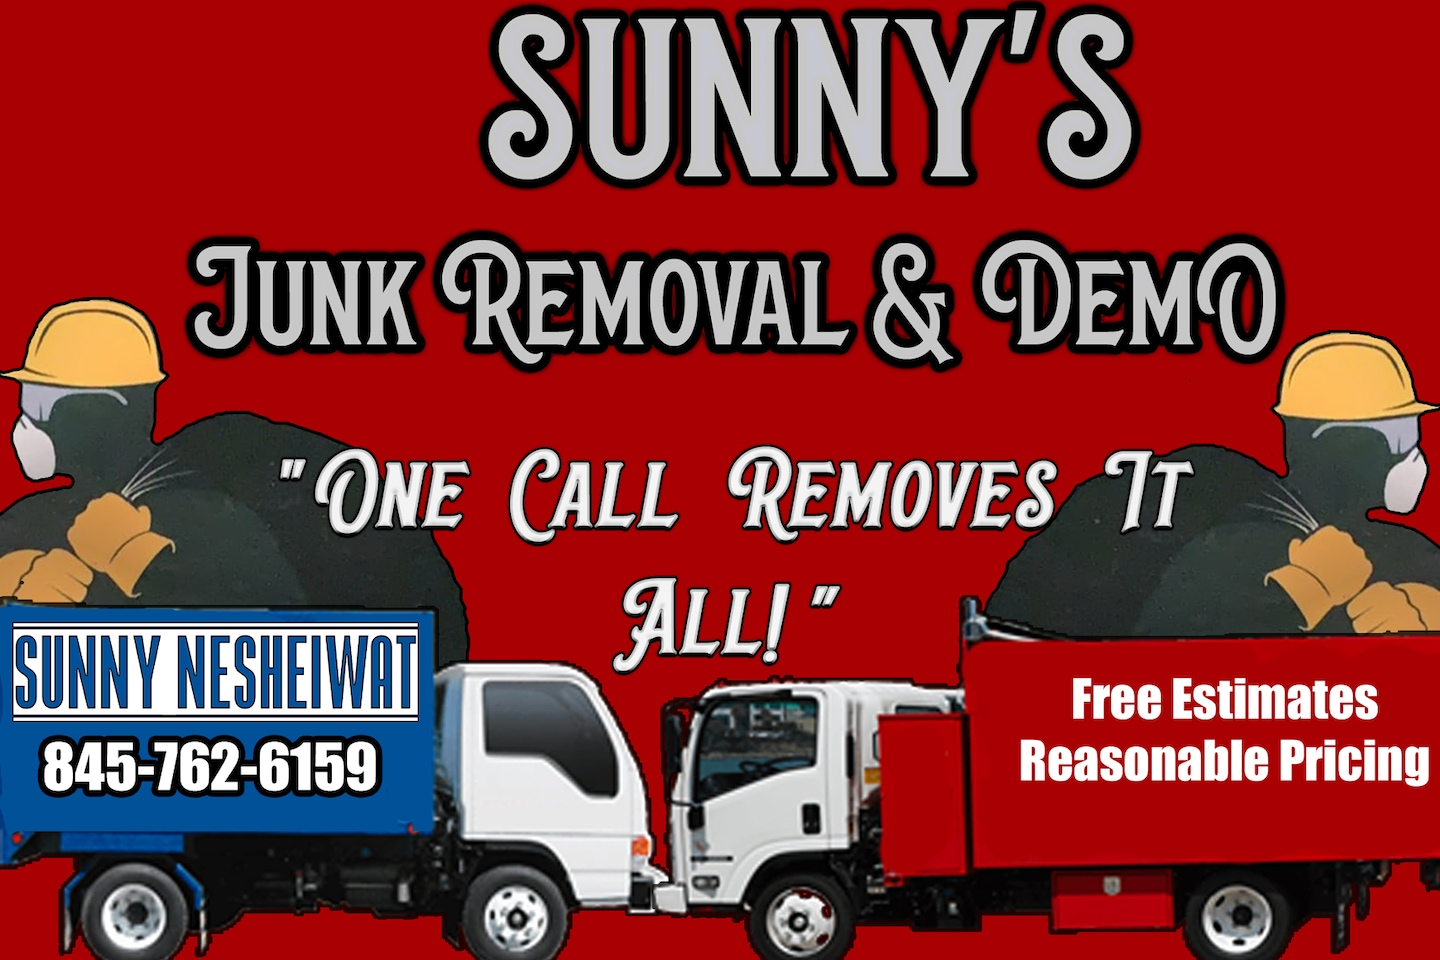 sunnys junk removal